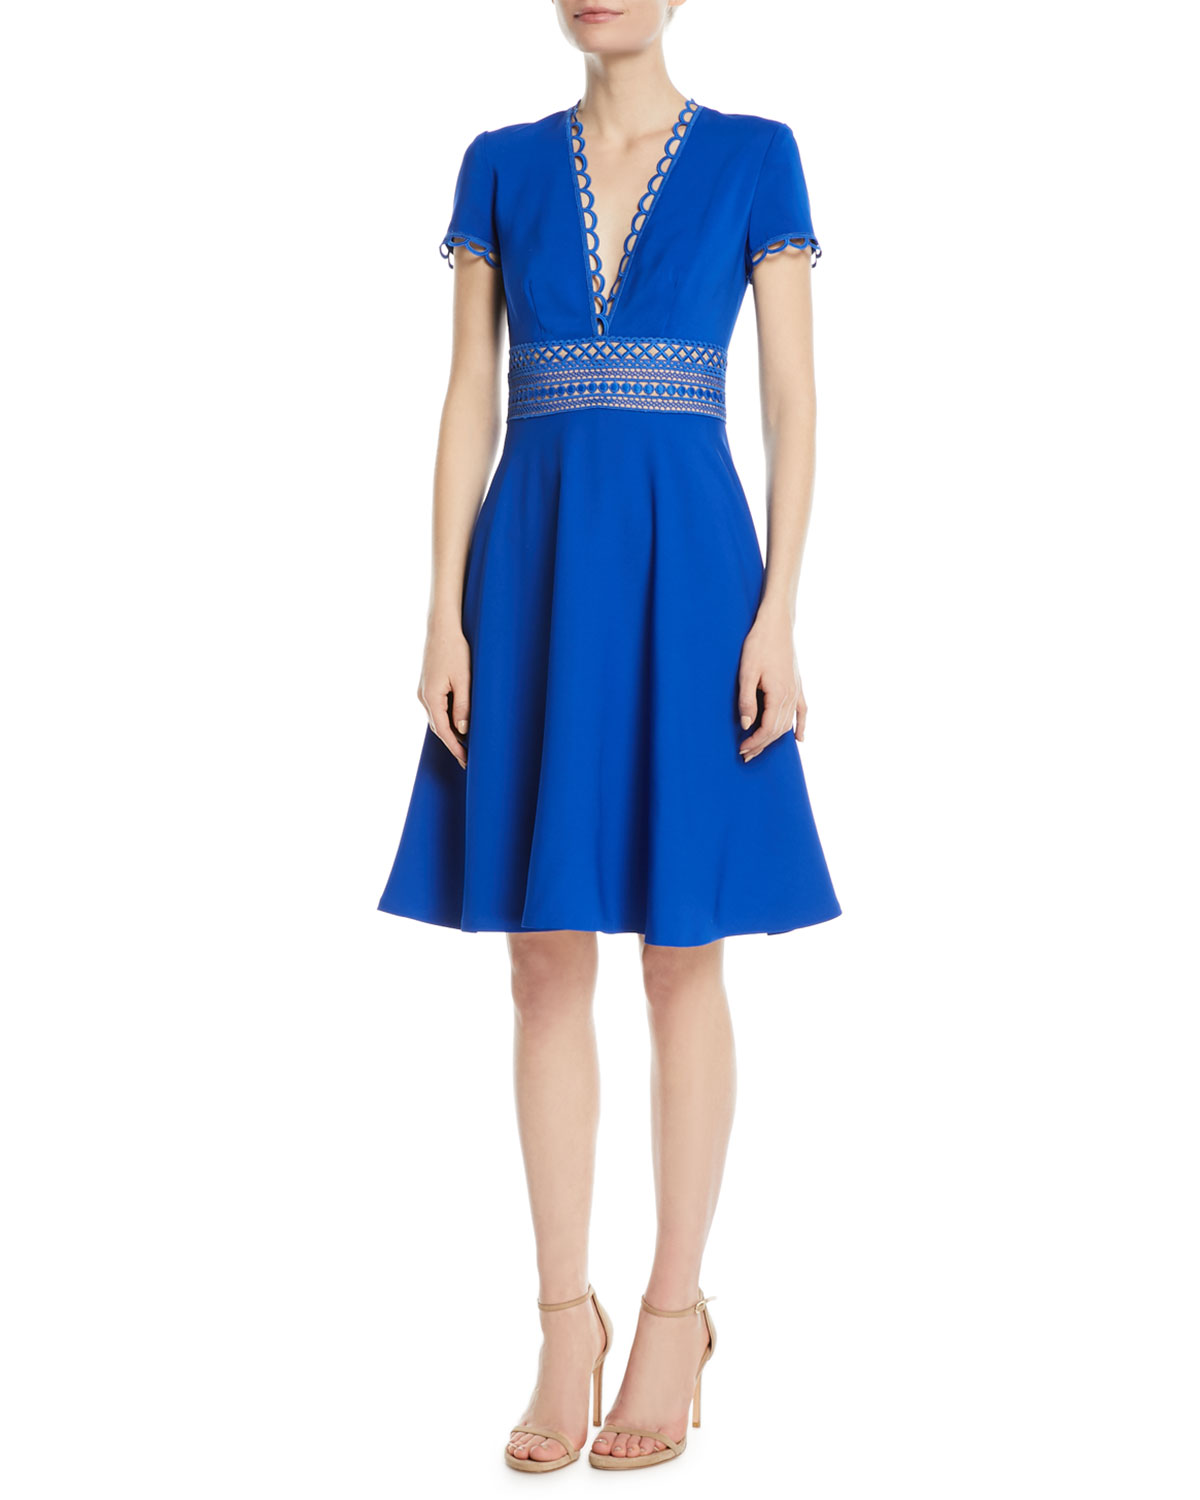 NK32 Naeem KhanCrepe Short-Sleeve Cocktail Dress w/ Lace Band